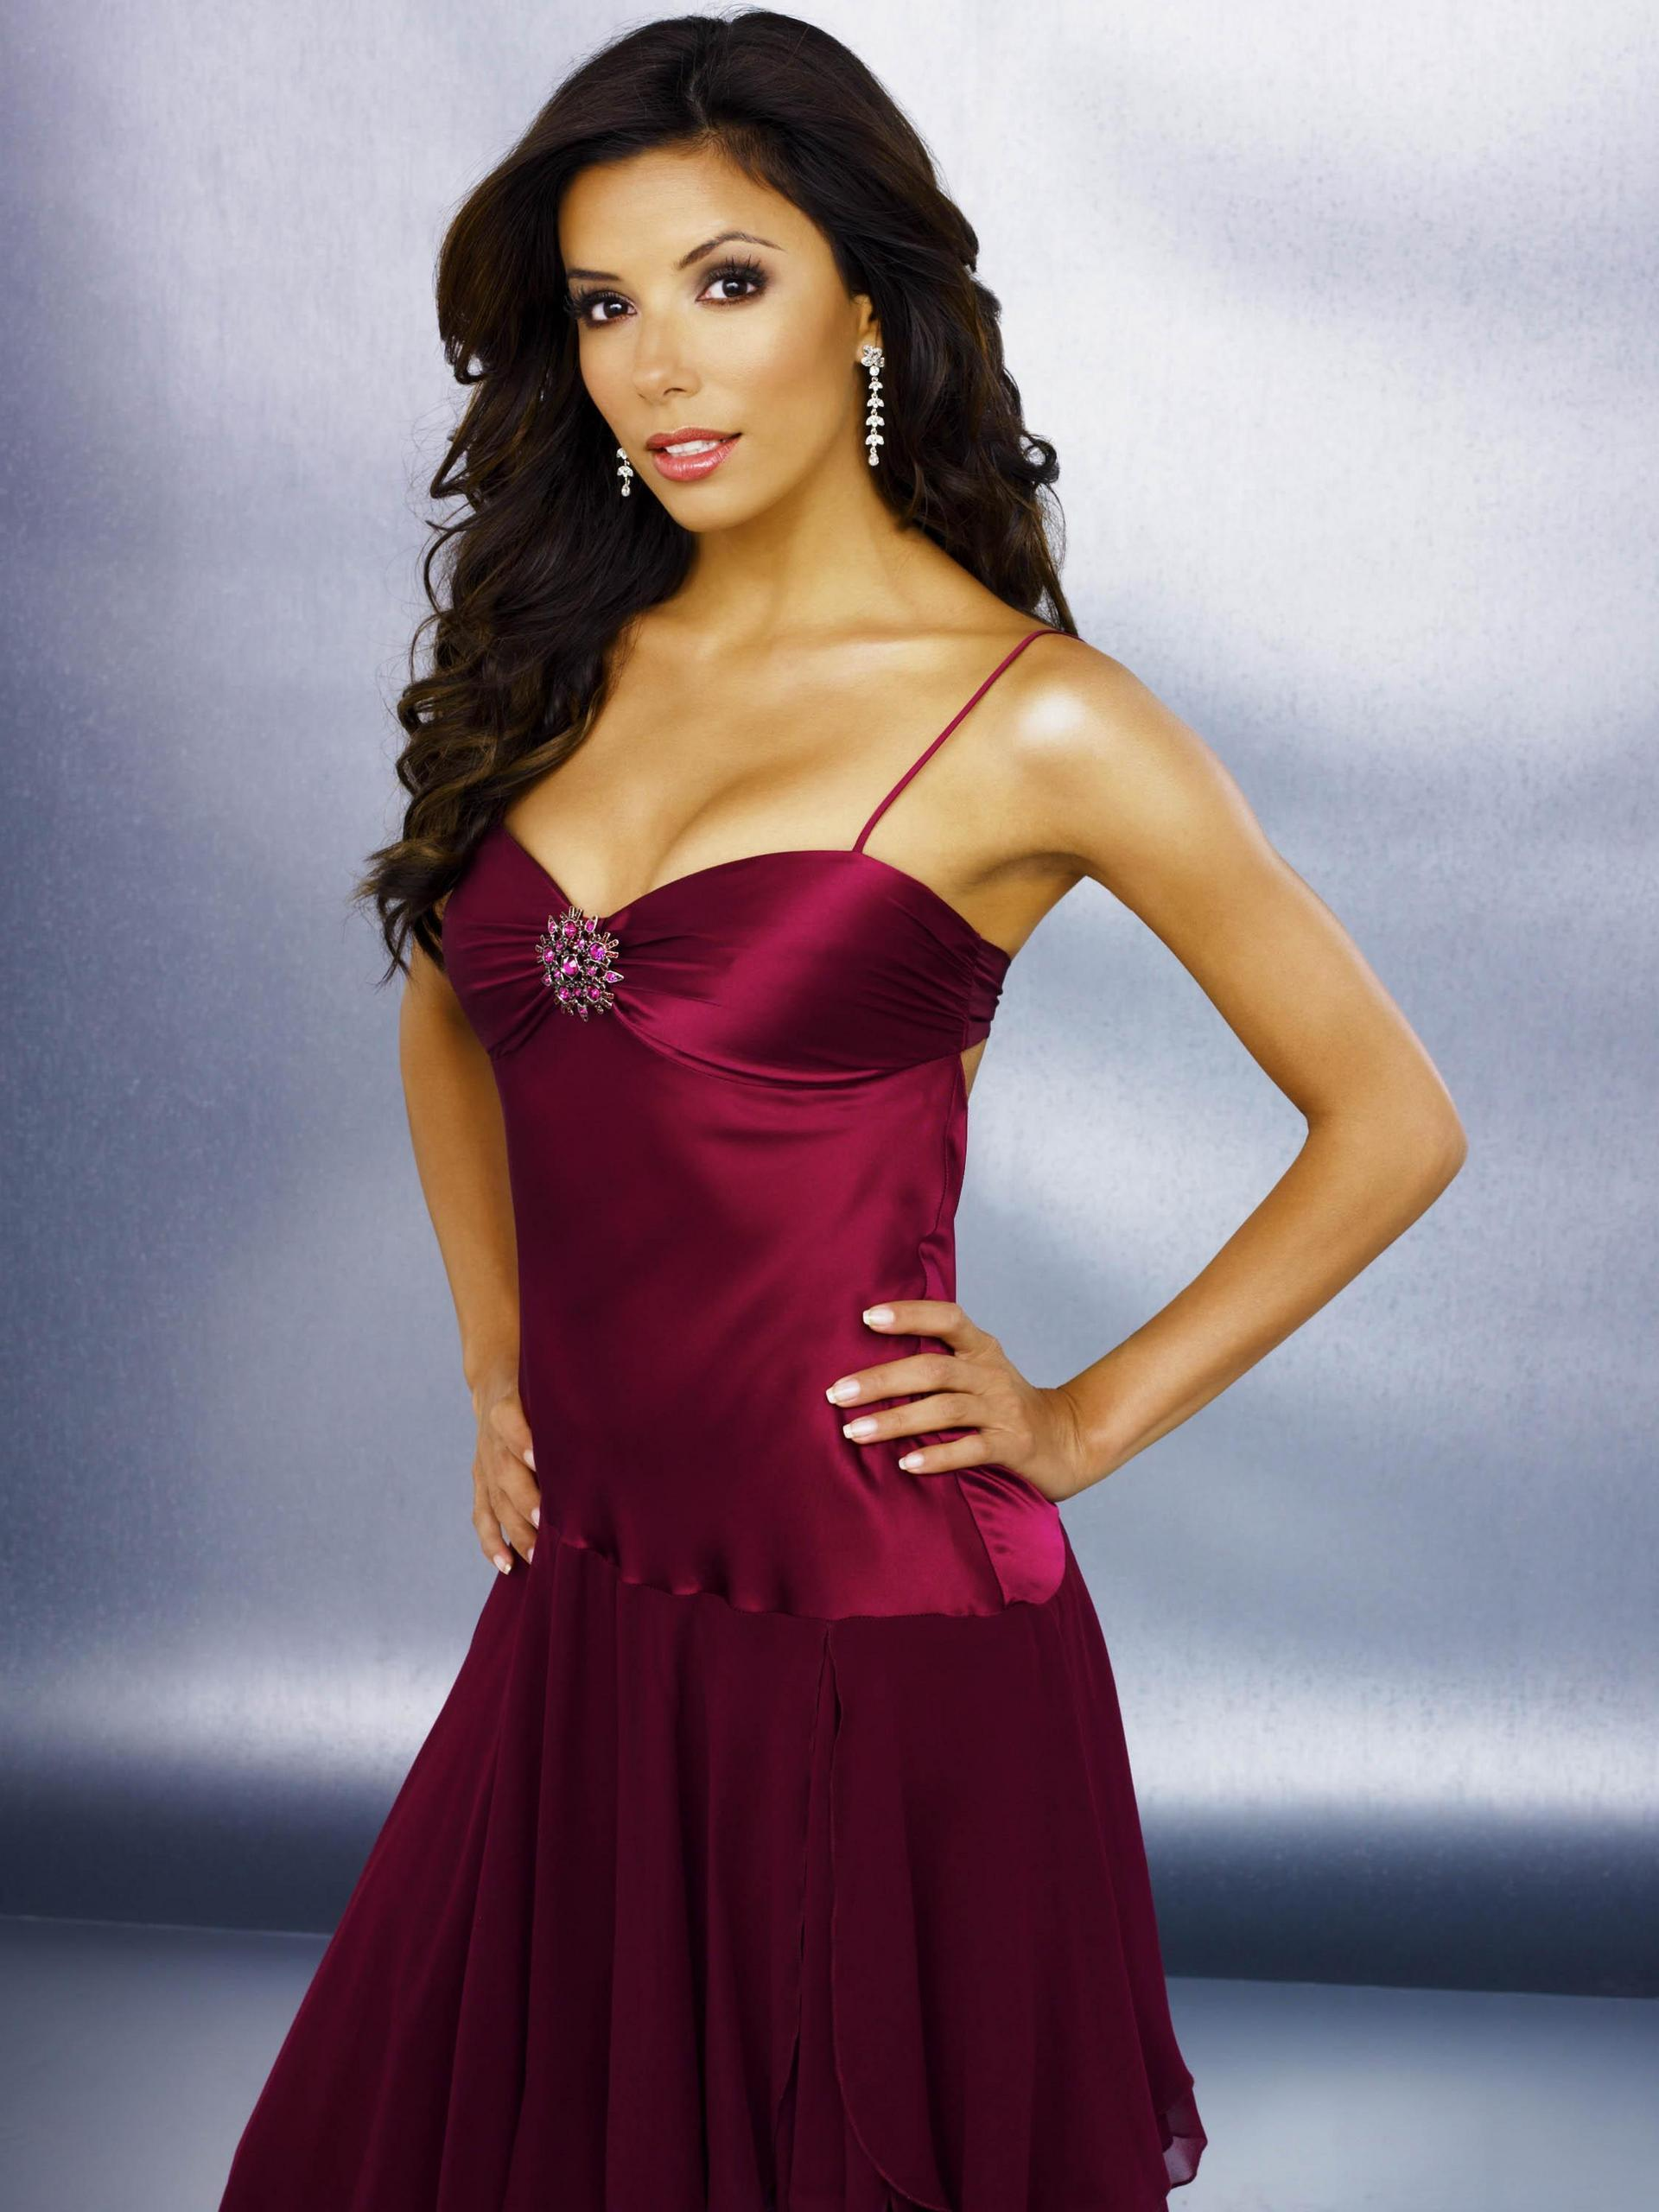 http://images2.fanpop.com/images/photos/6000000/Housewives-desperate-housewives-6026726-1920-2560.jpg